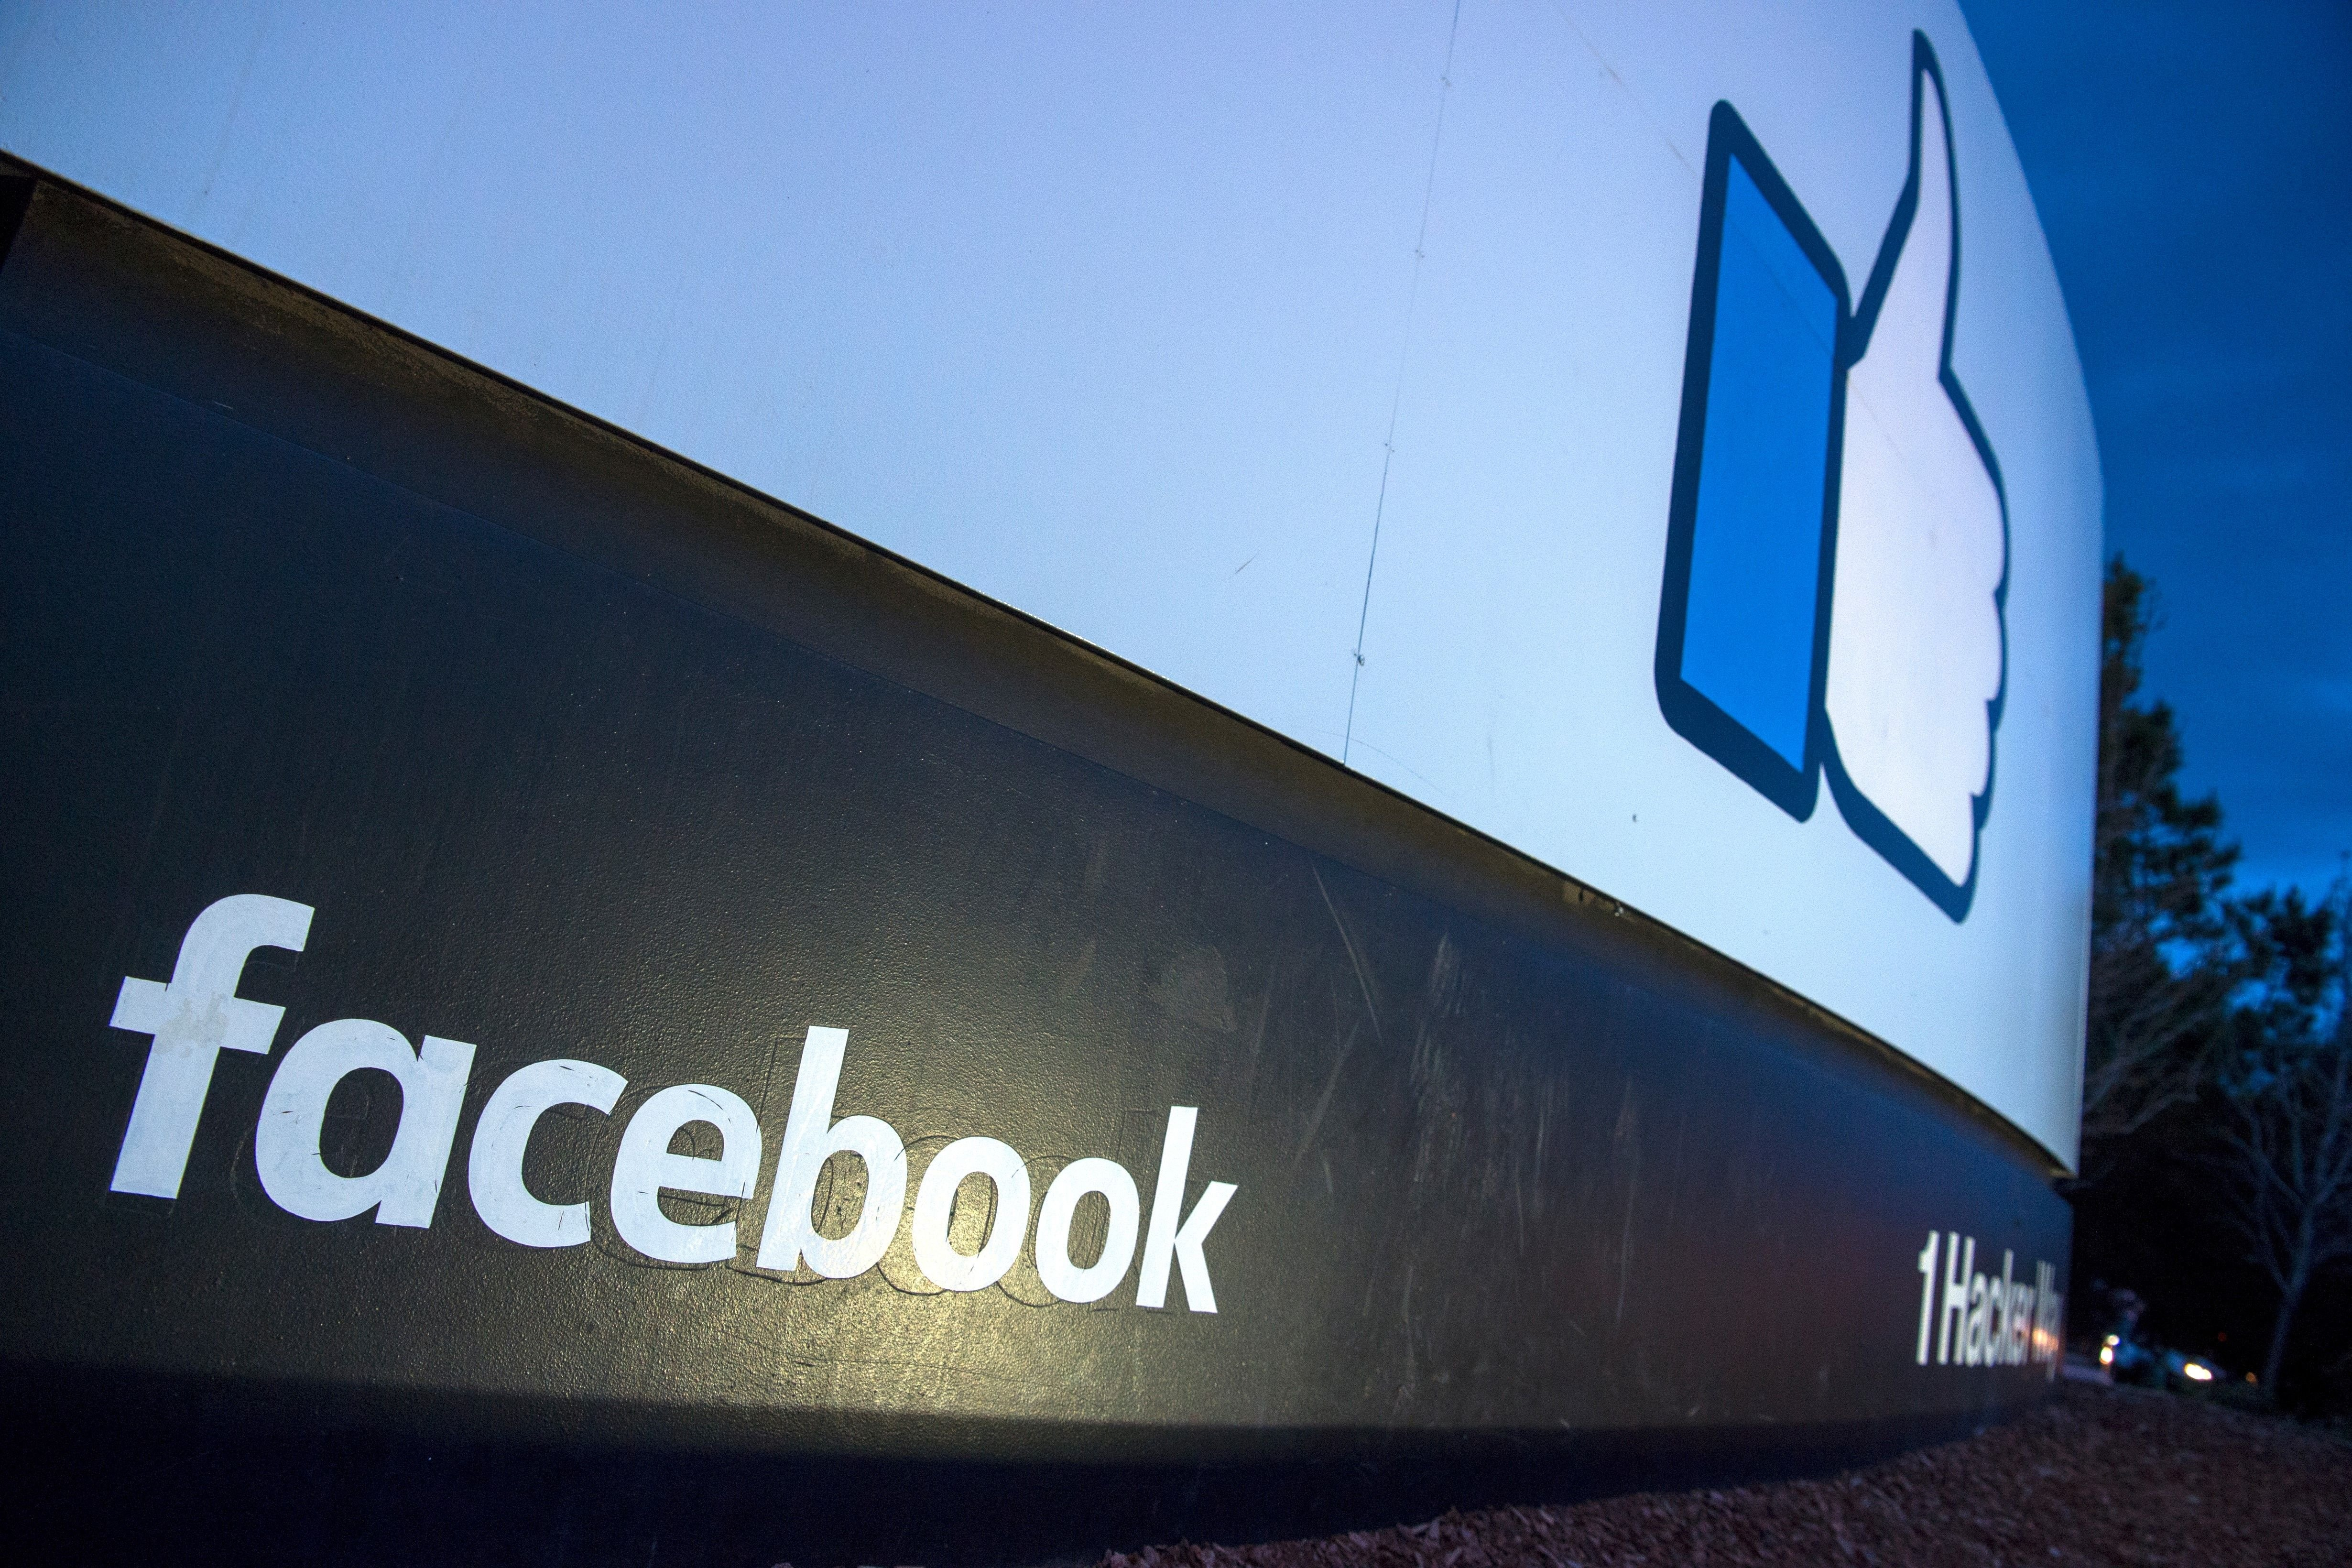 Yes, Facebook is scanning your messages for abuse